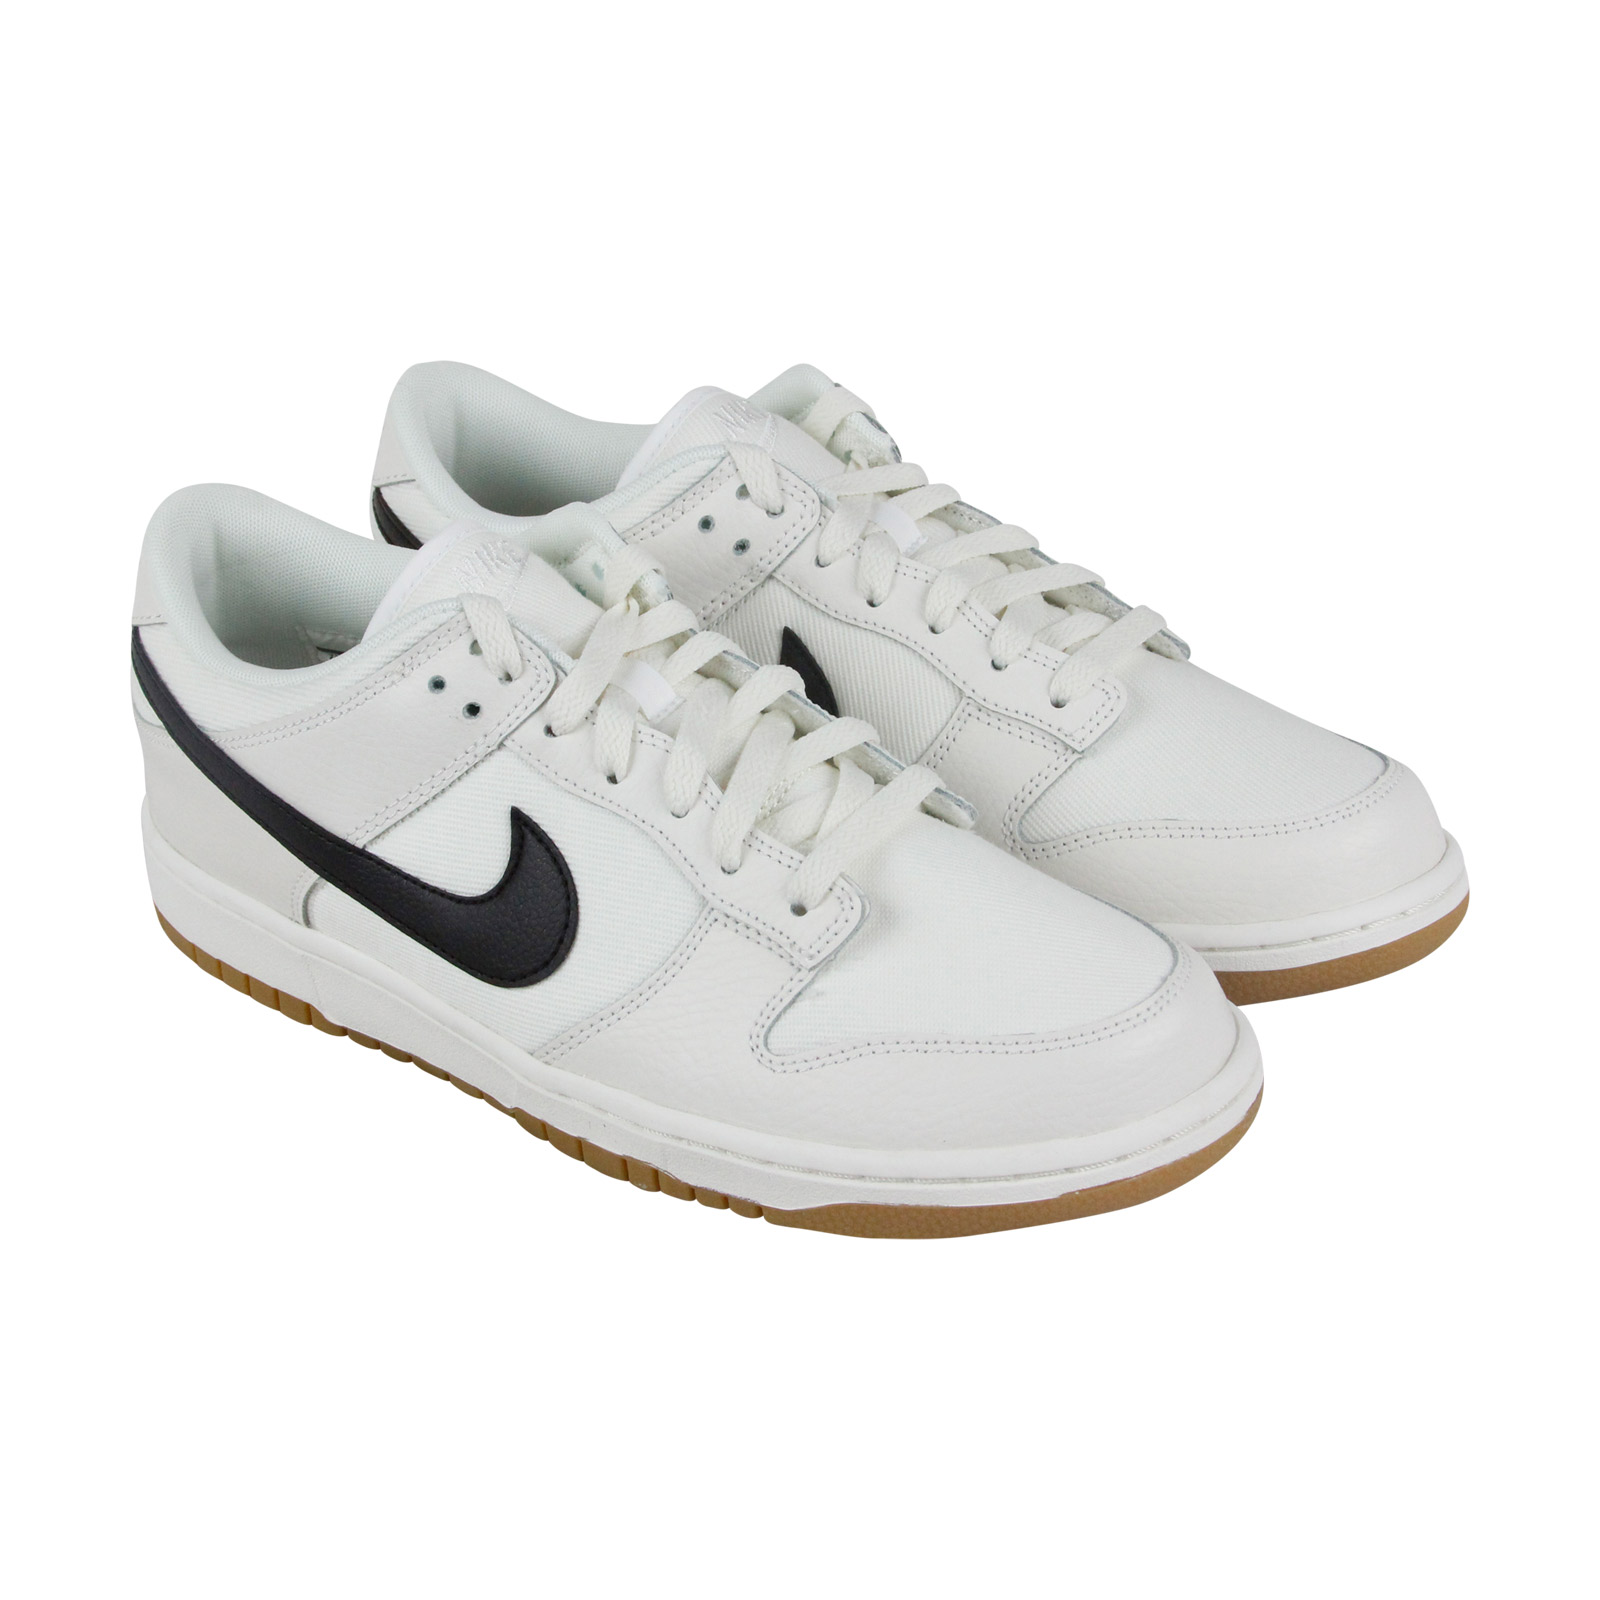 Nike Dunk Low Mens White Canvas Lace Up Sneakers Shoes 8.5